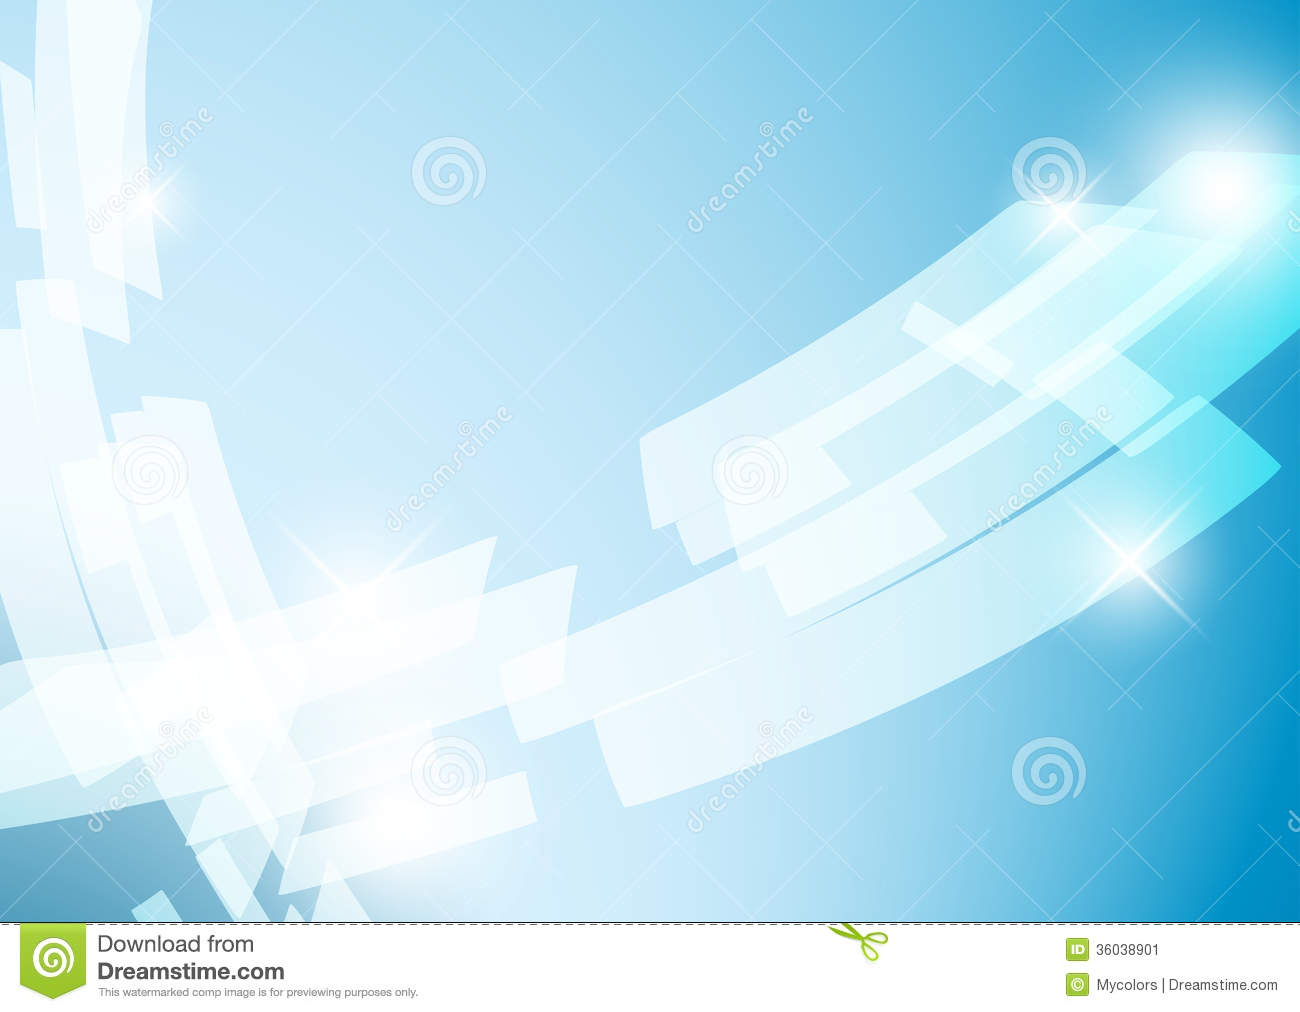 Blue Abstract Vector Background With Shiny Figures Stock ...